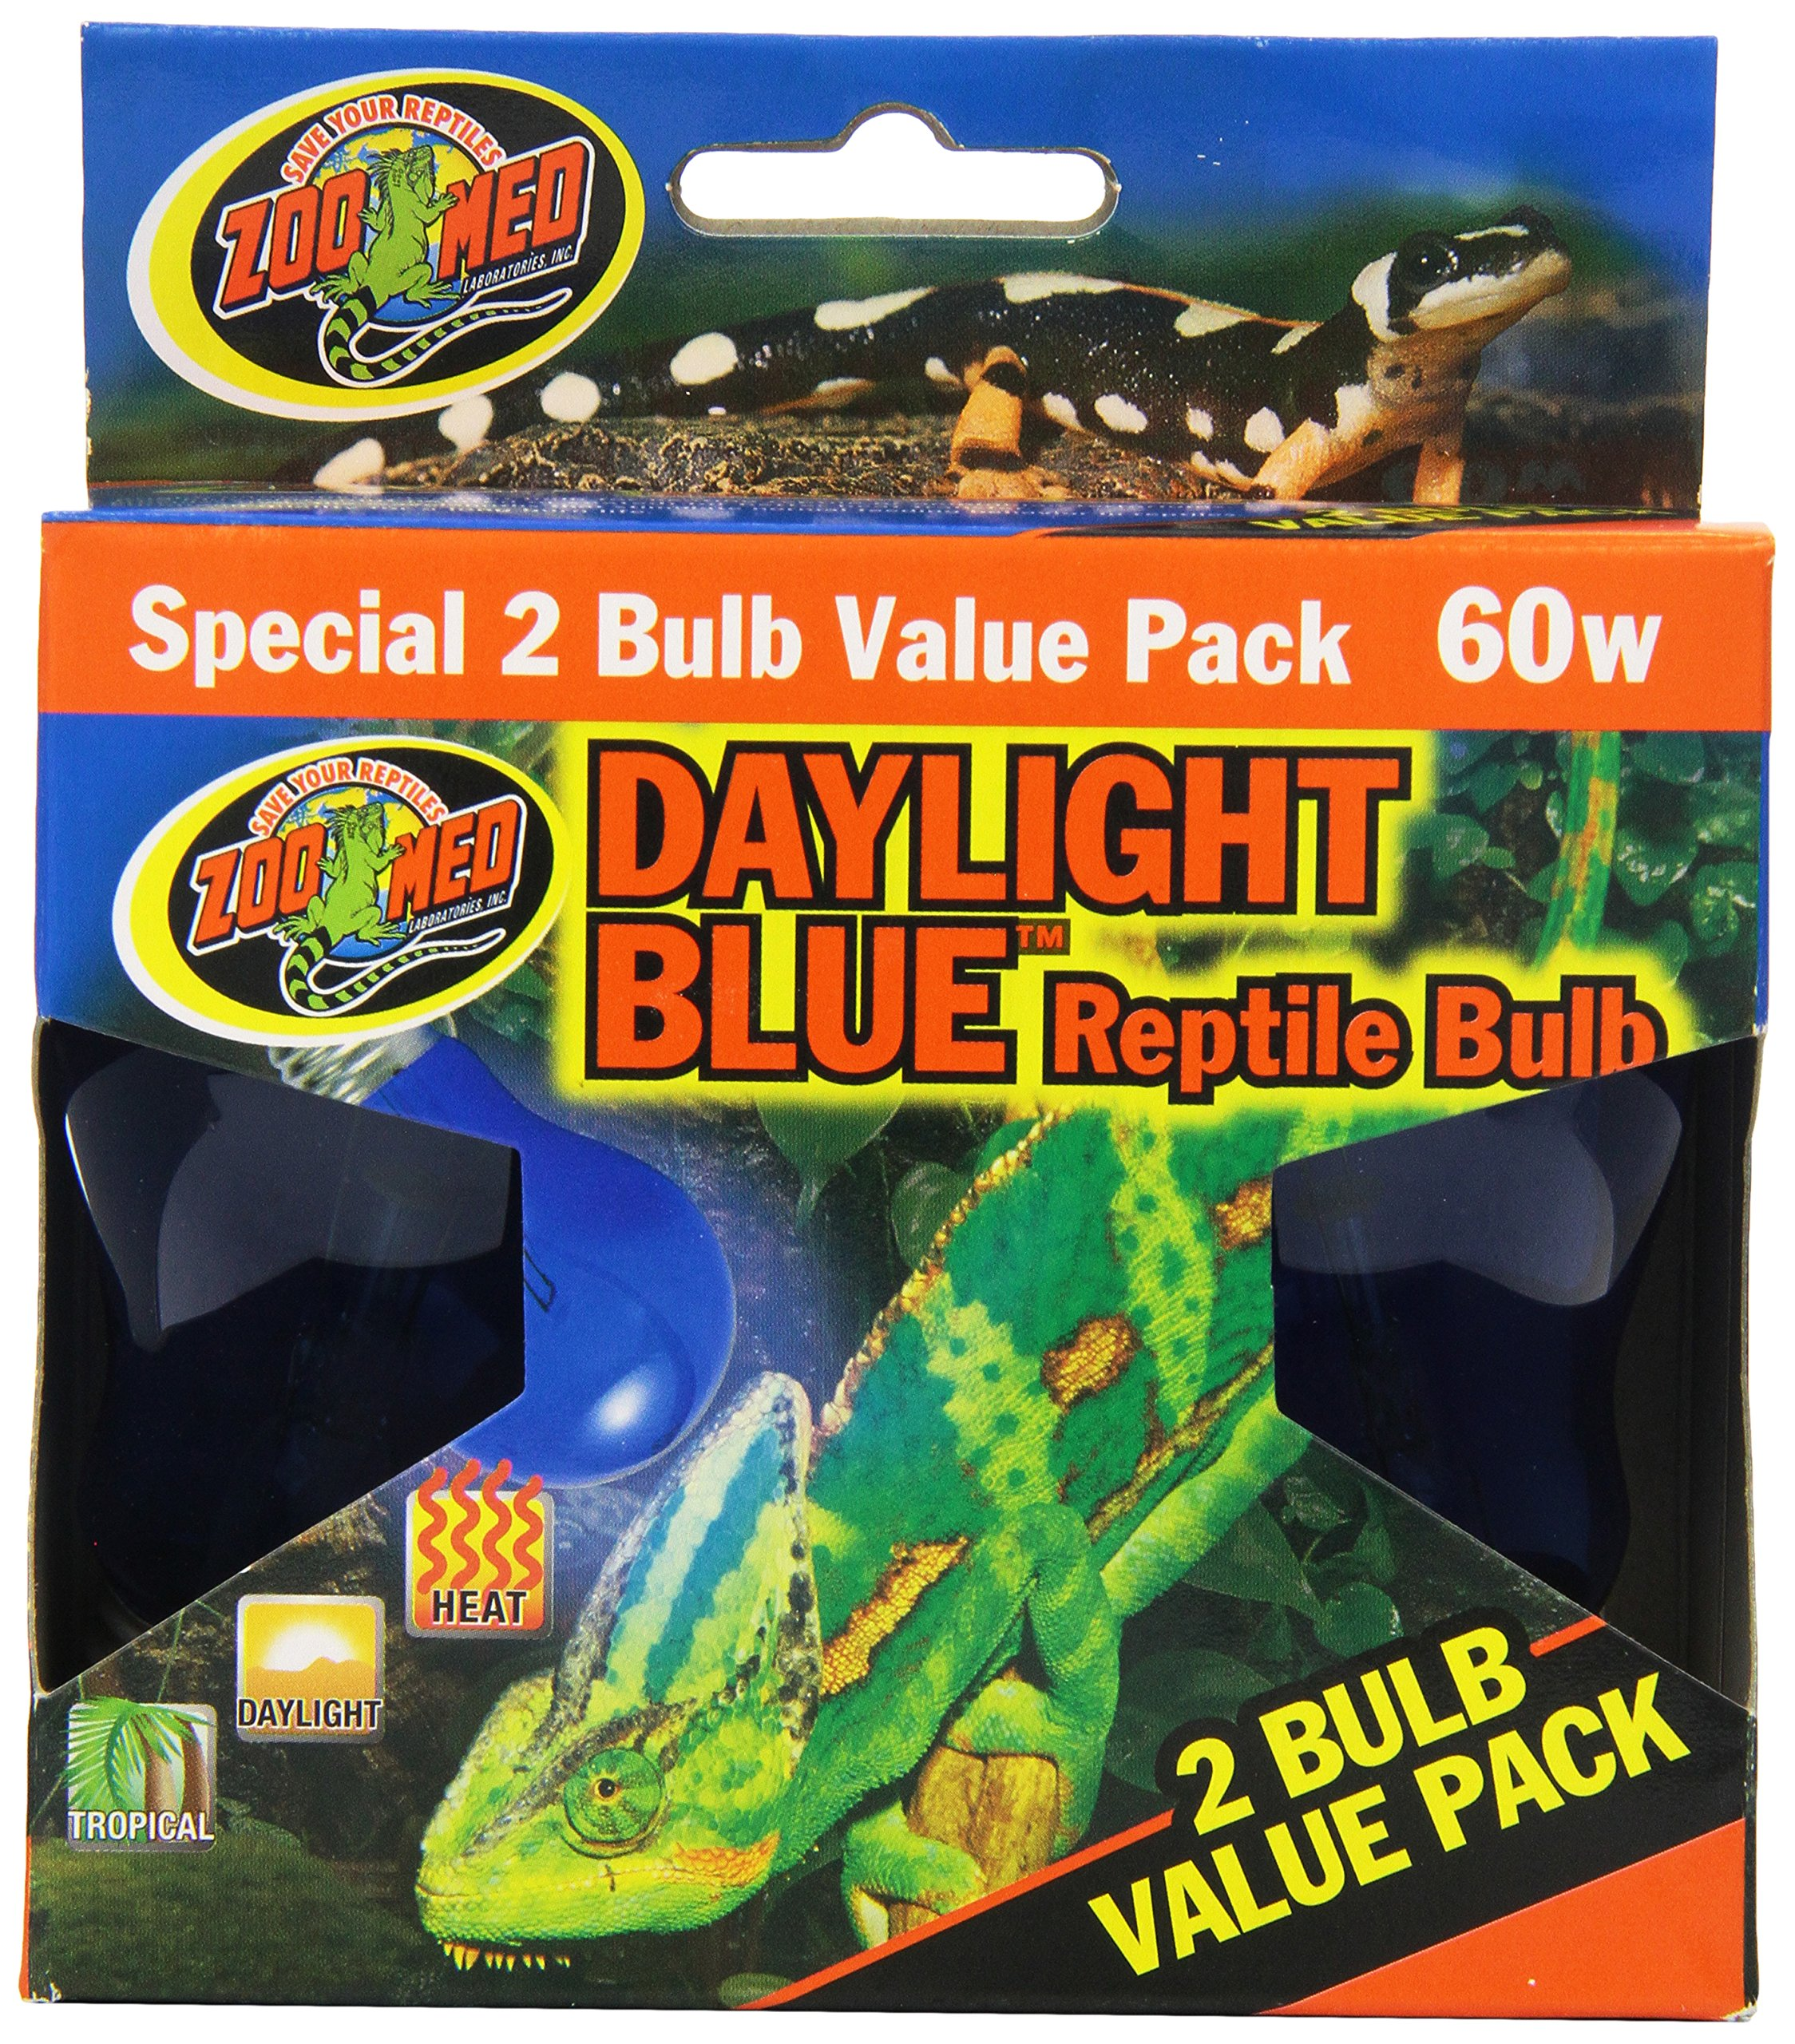 Zoo Med 2-Pack Daylight Blue Reptile Bulb, 60-watt by Zoo Med (Image #1)